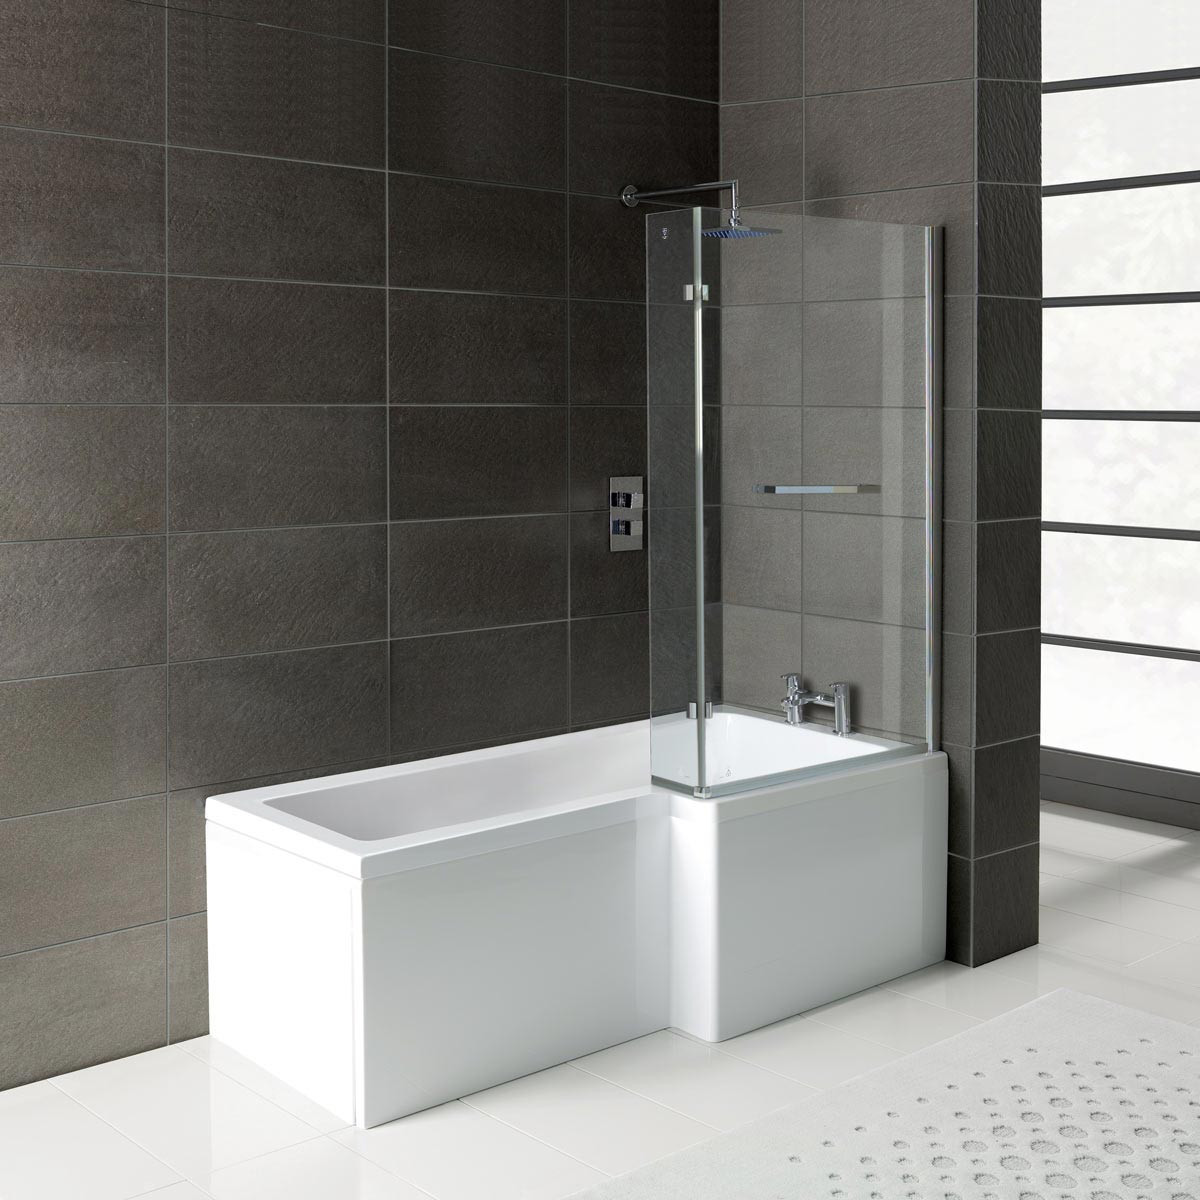 L shaped bath leda l shape shower bath 1700 x 850 with panel u0026 screen right GZMIJKB